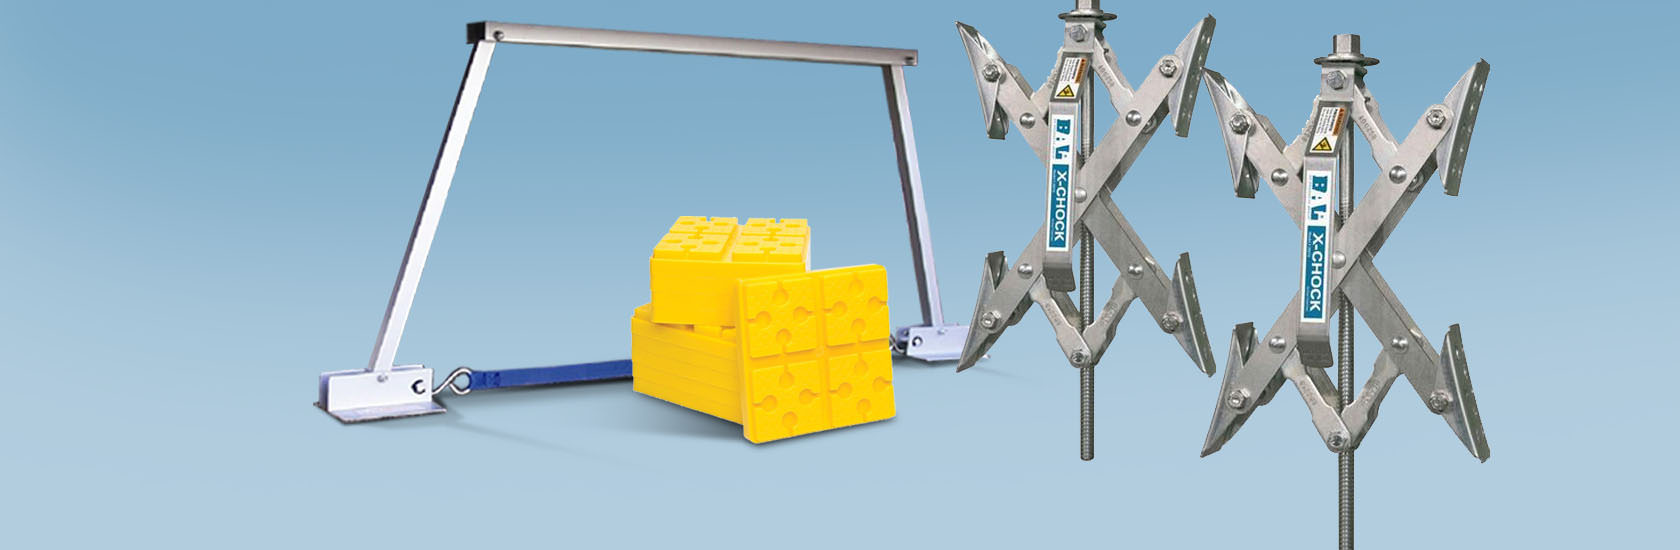 Shop the Widest Selection of Jacks, Levels & Chocks